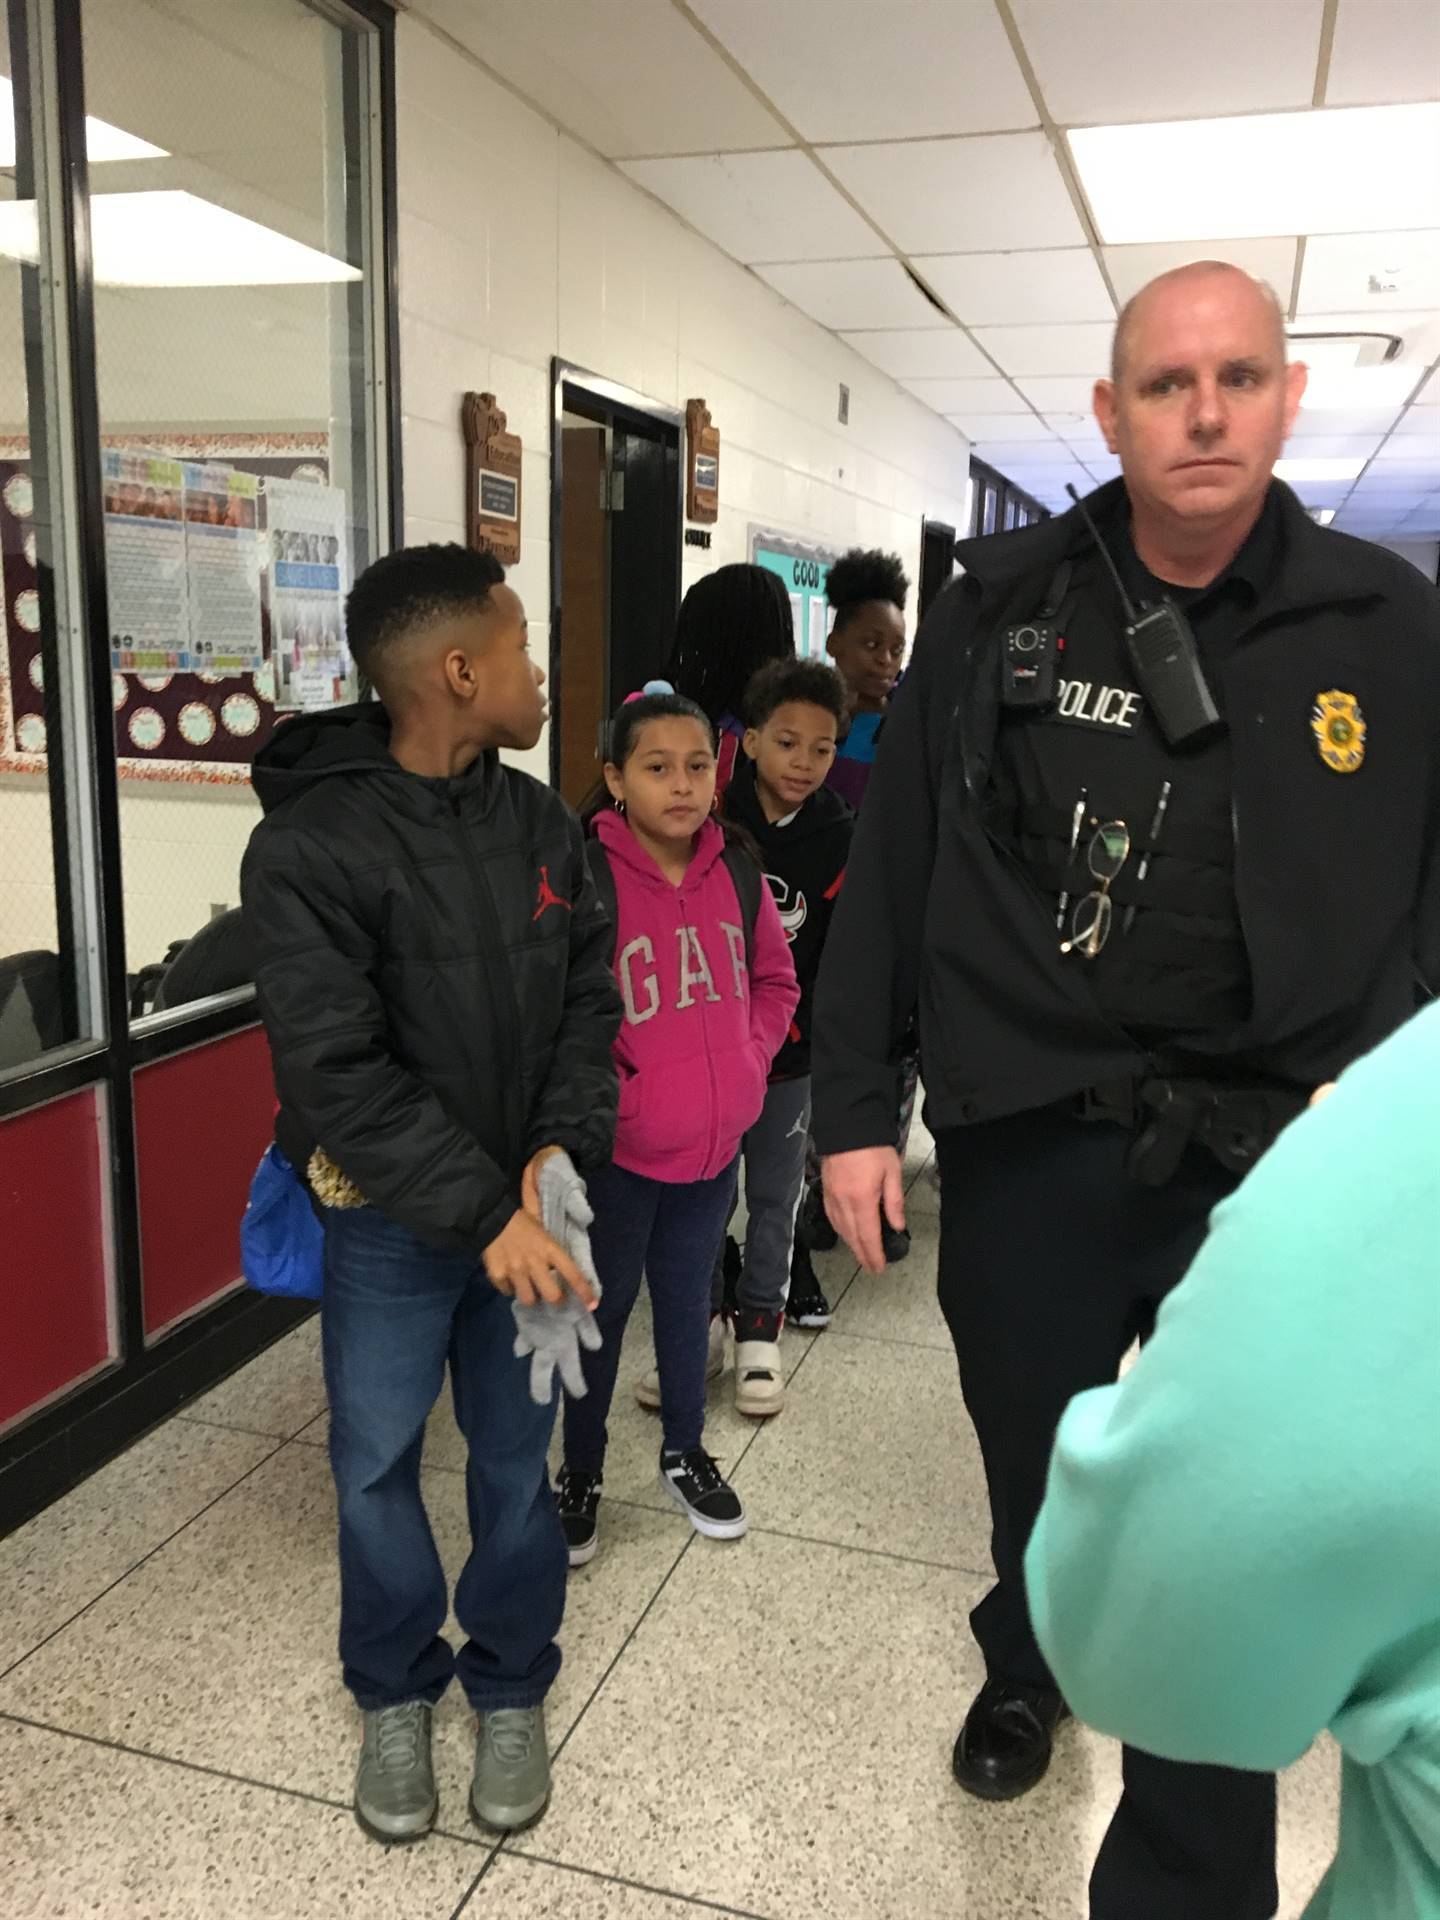 School Resource Officer Mallory greets students in the hall.